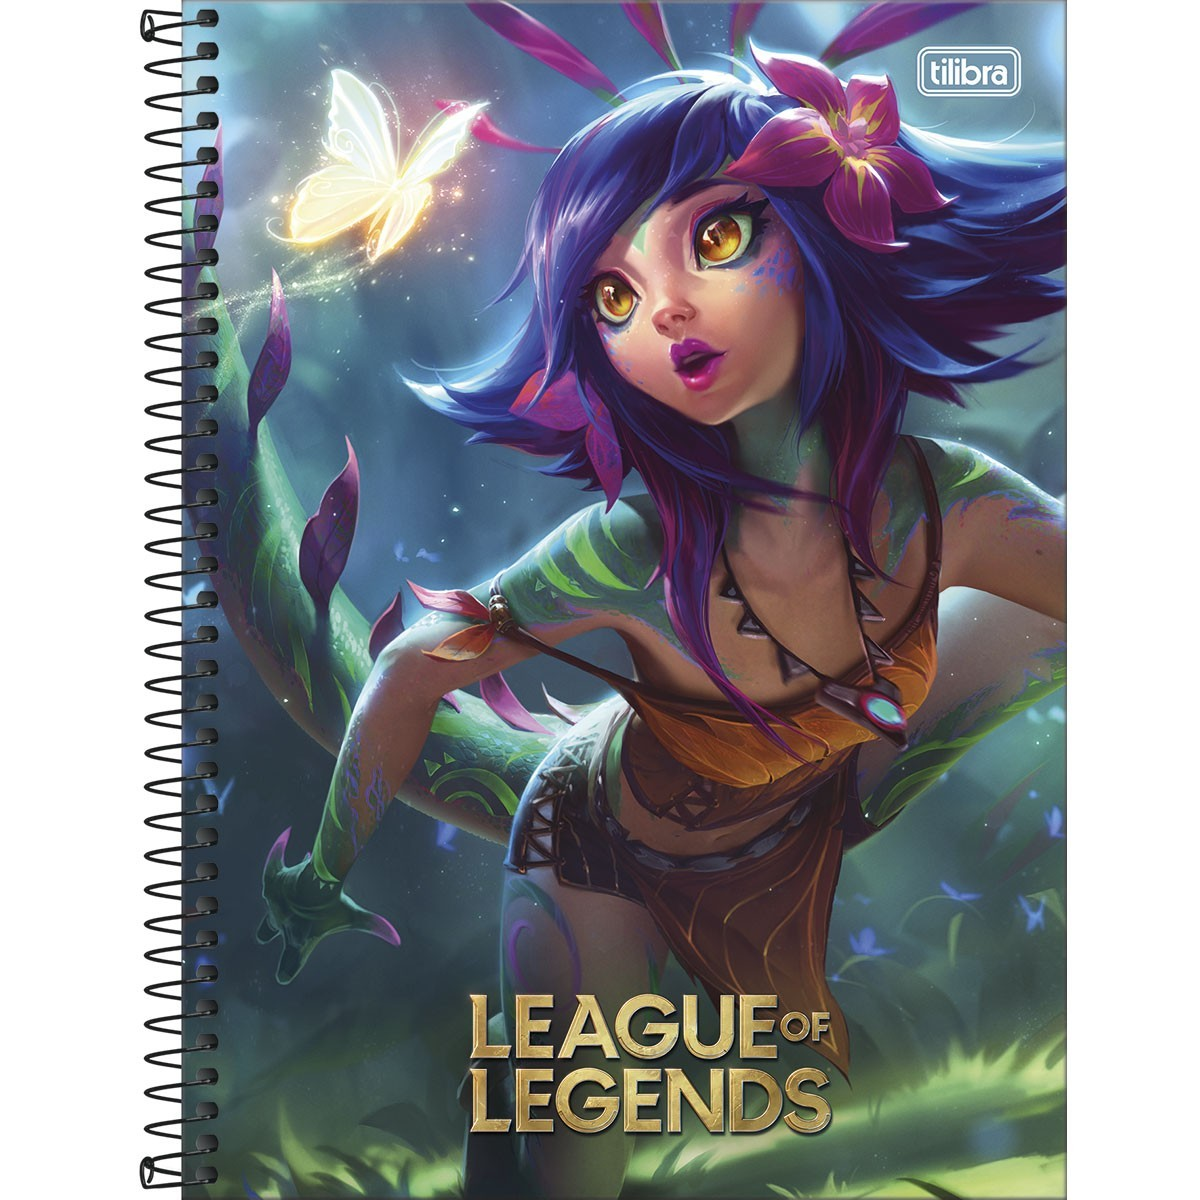 Caderno Espiral Capa Dura Universitário 12 Matérias League of Legends Nekko 240 Folhas